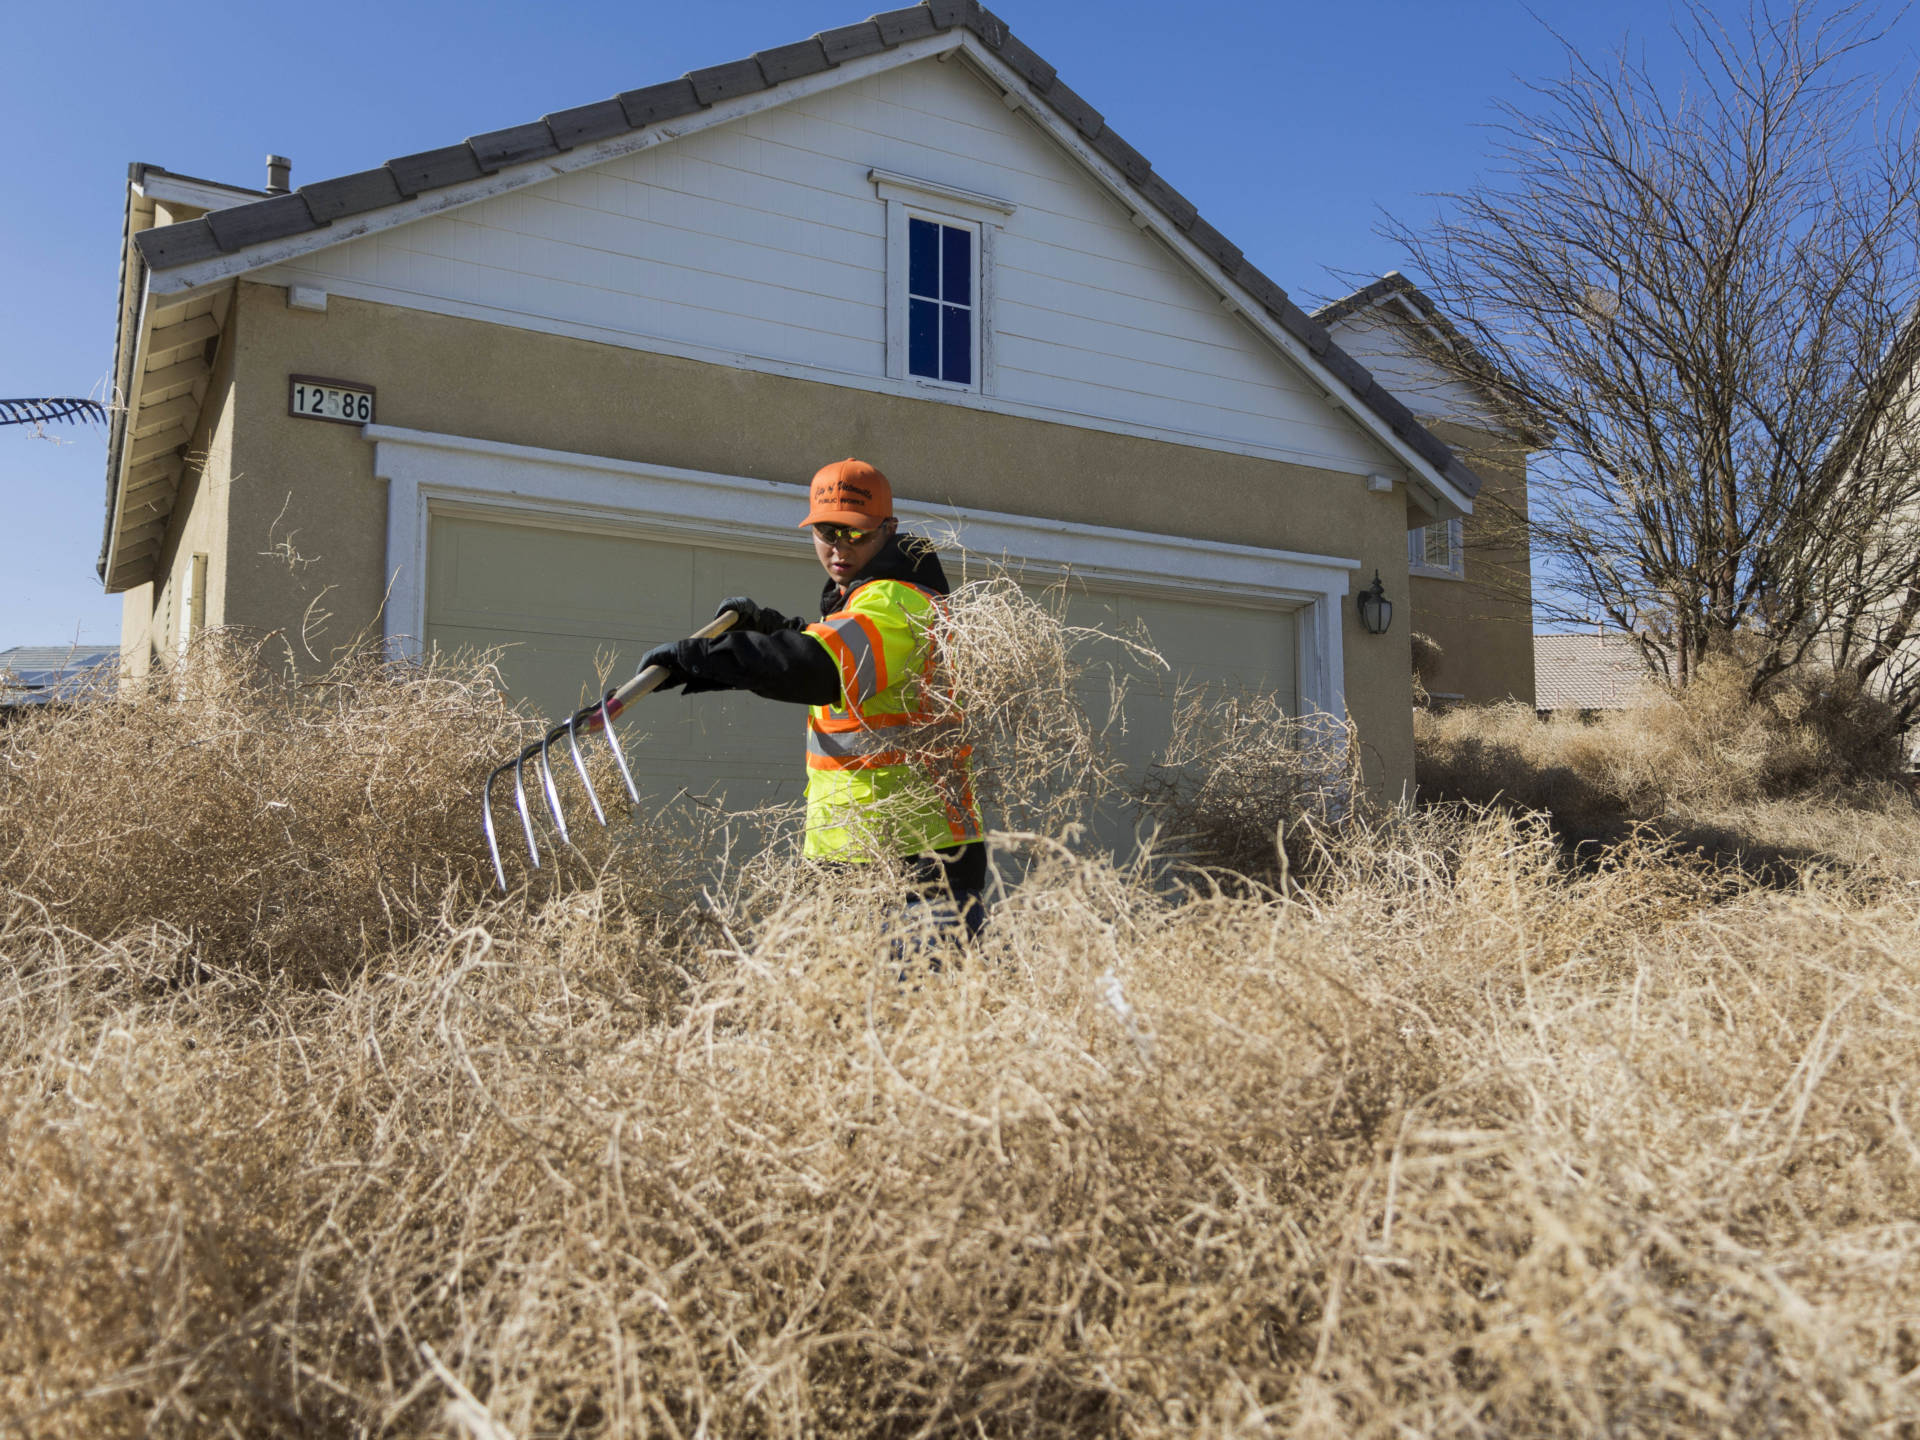 A member of the Victorville public works team clears tumbleweeds from homes on Monday. James Quigg/The Daily Press via AP